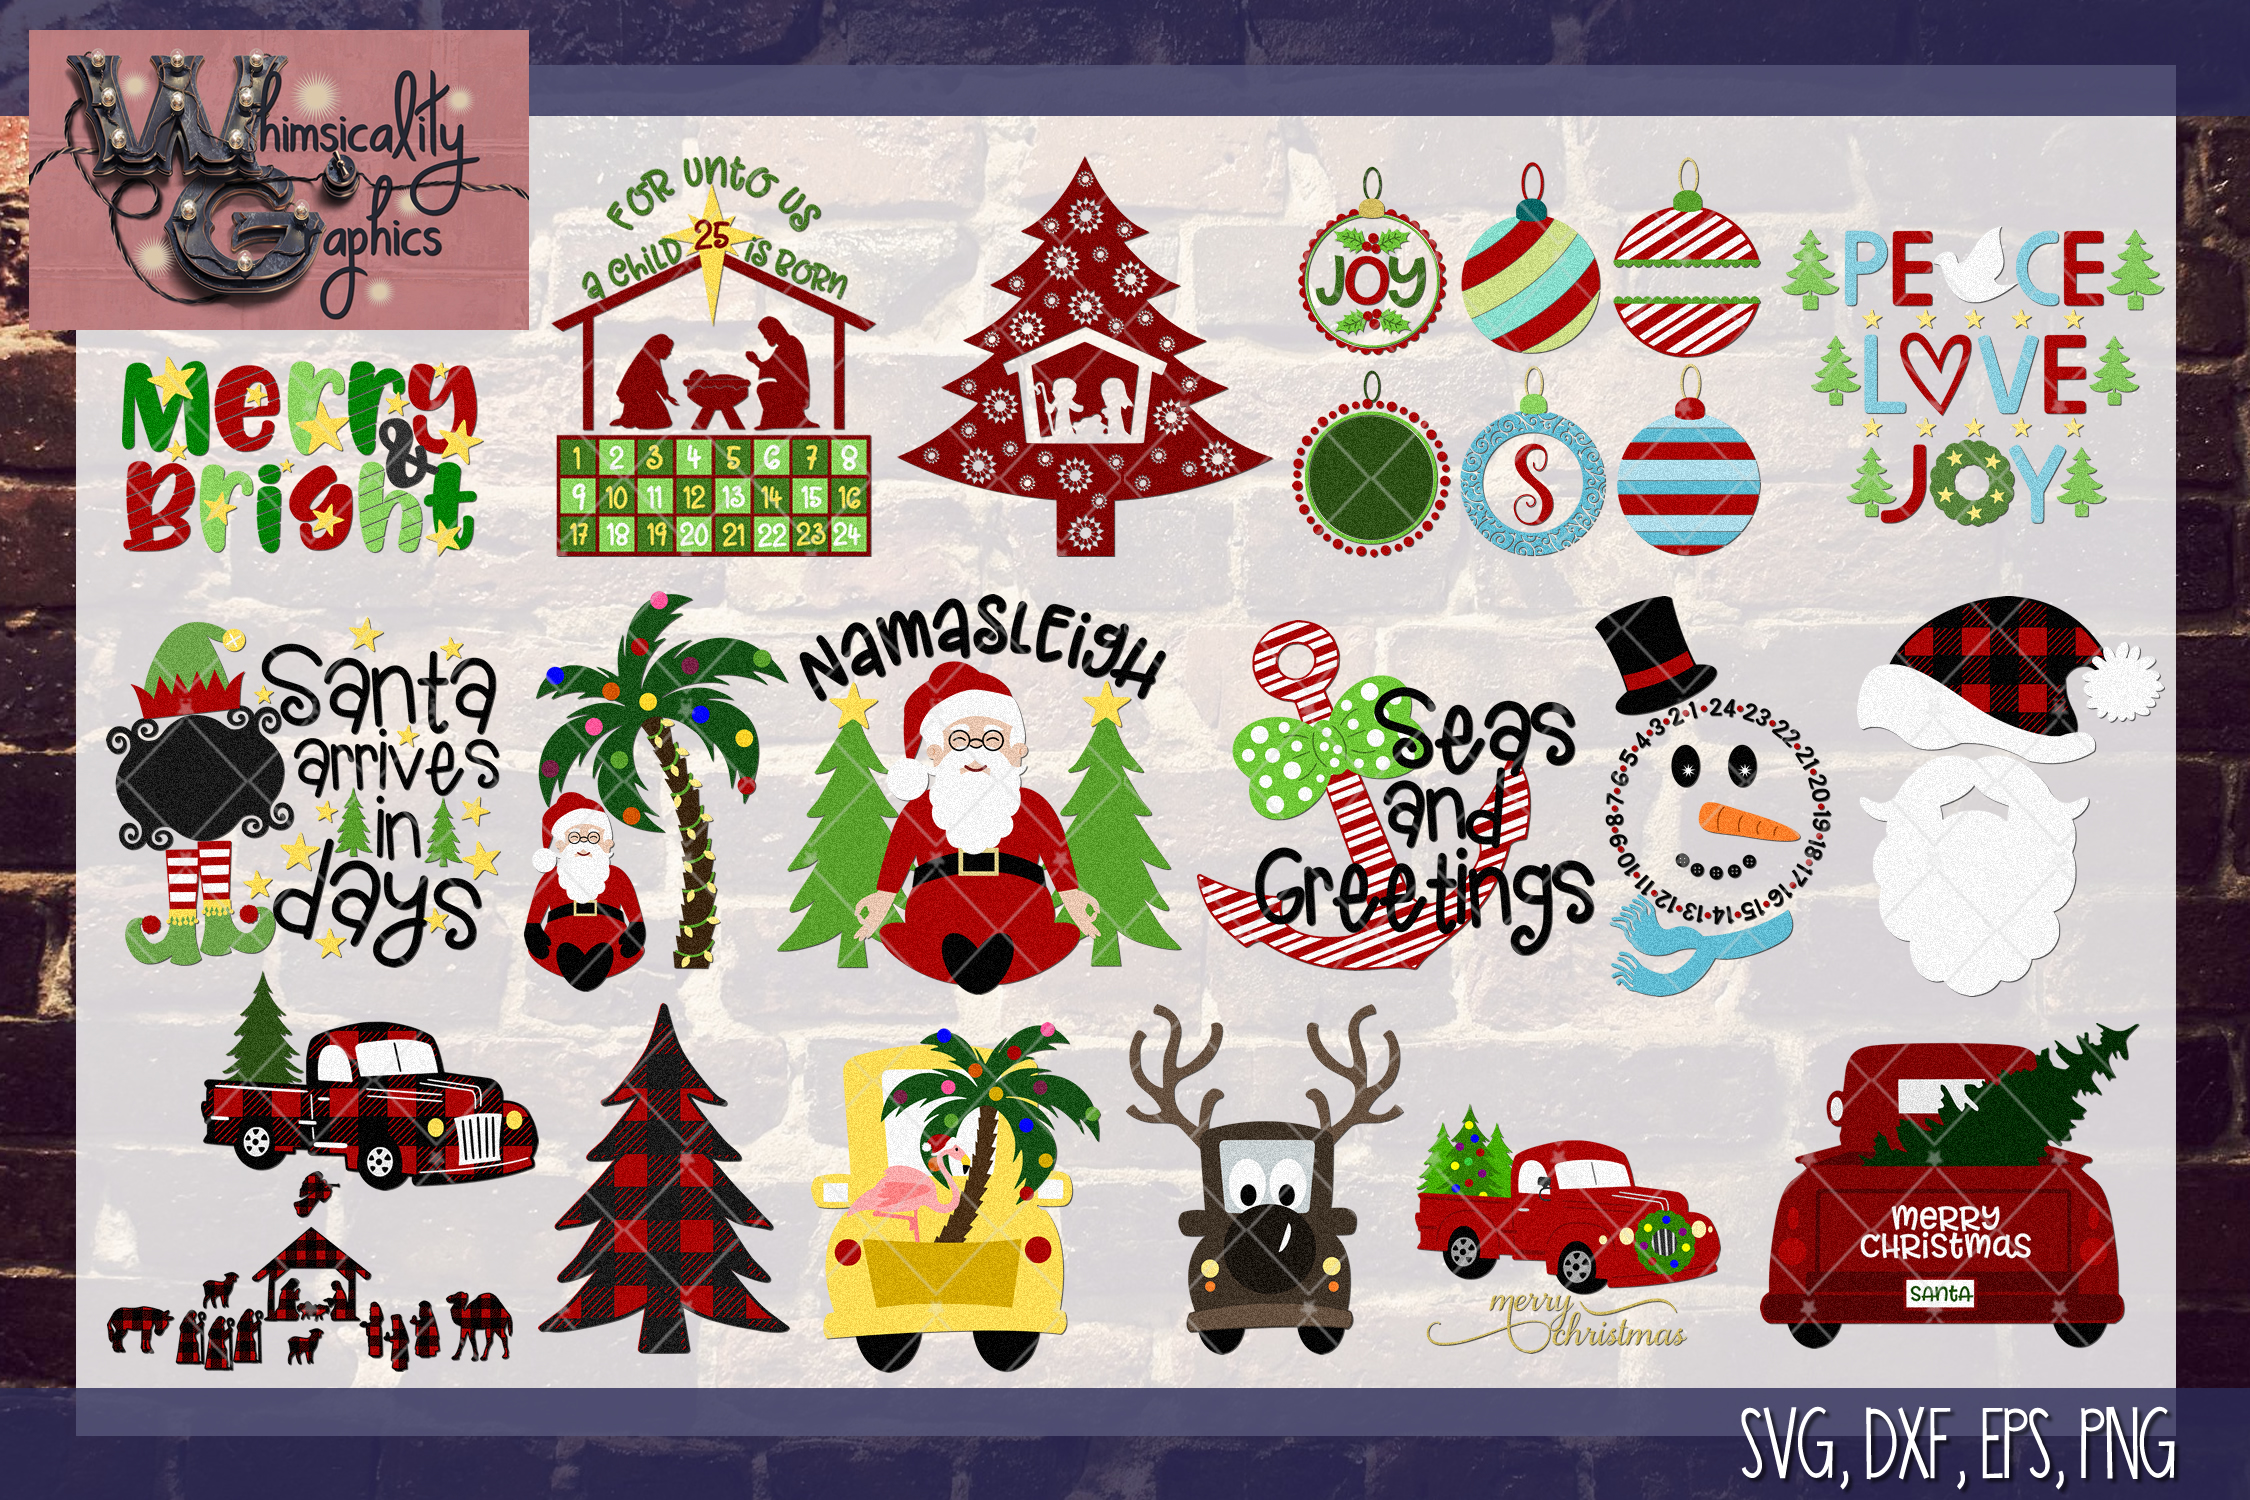 2018 Ultimate Christmas Bundle SVG, DXF, PNG, EPS Comm & Per example image 2